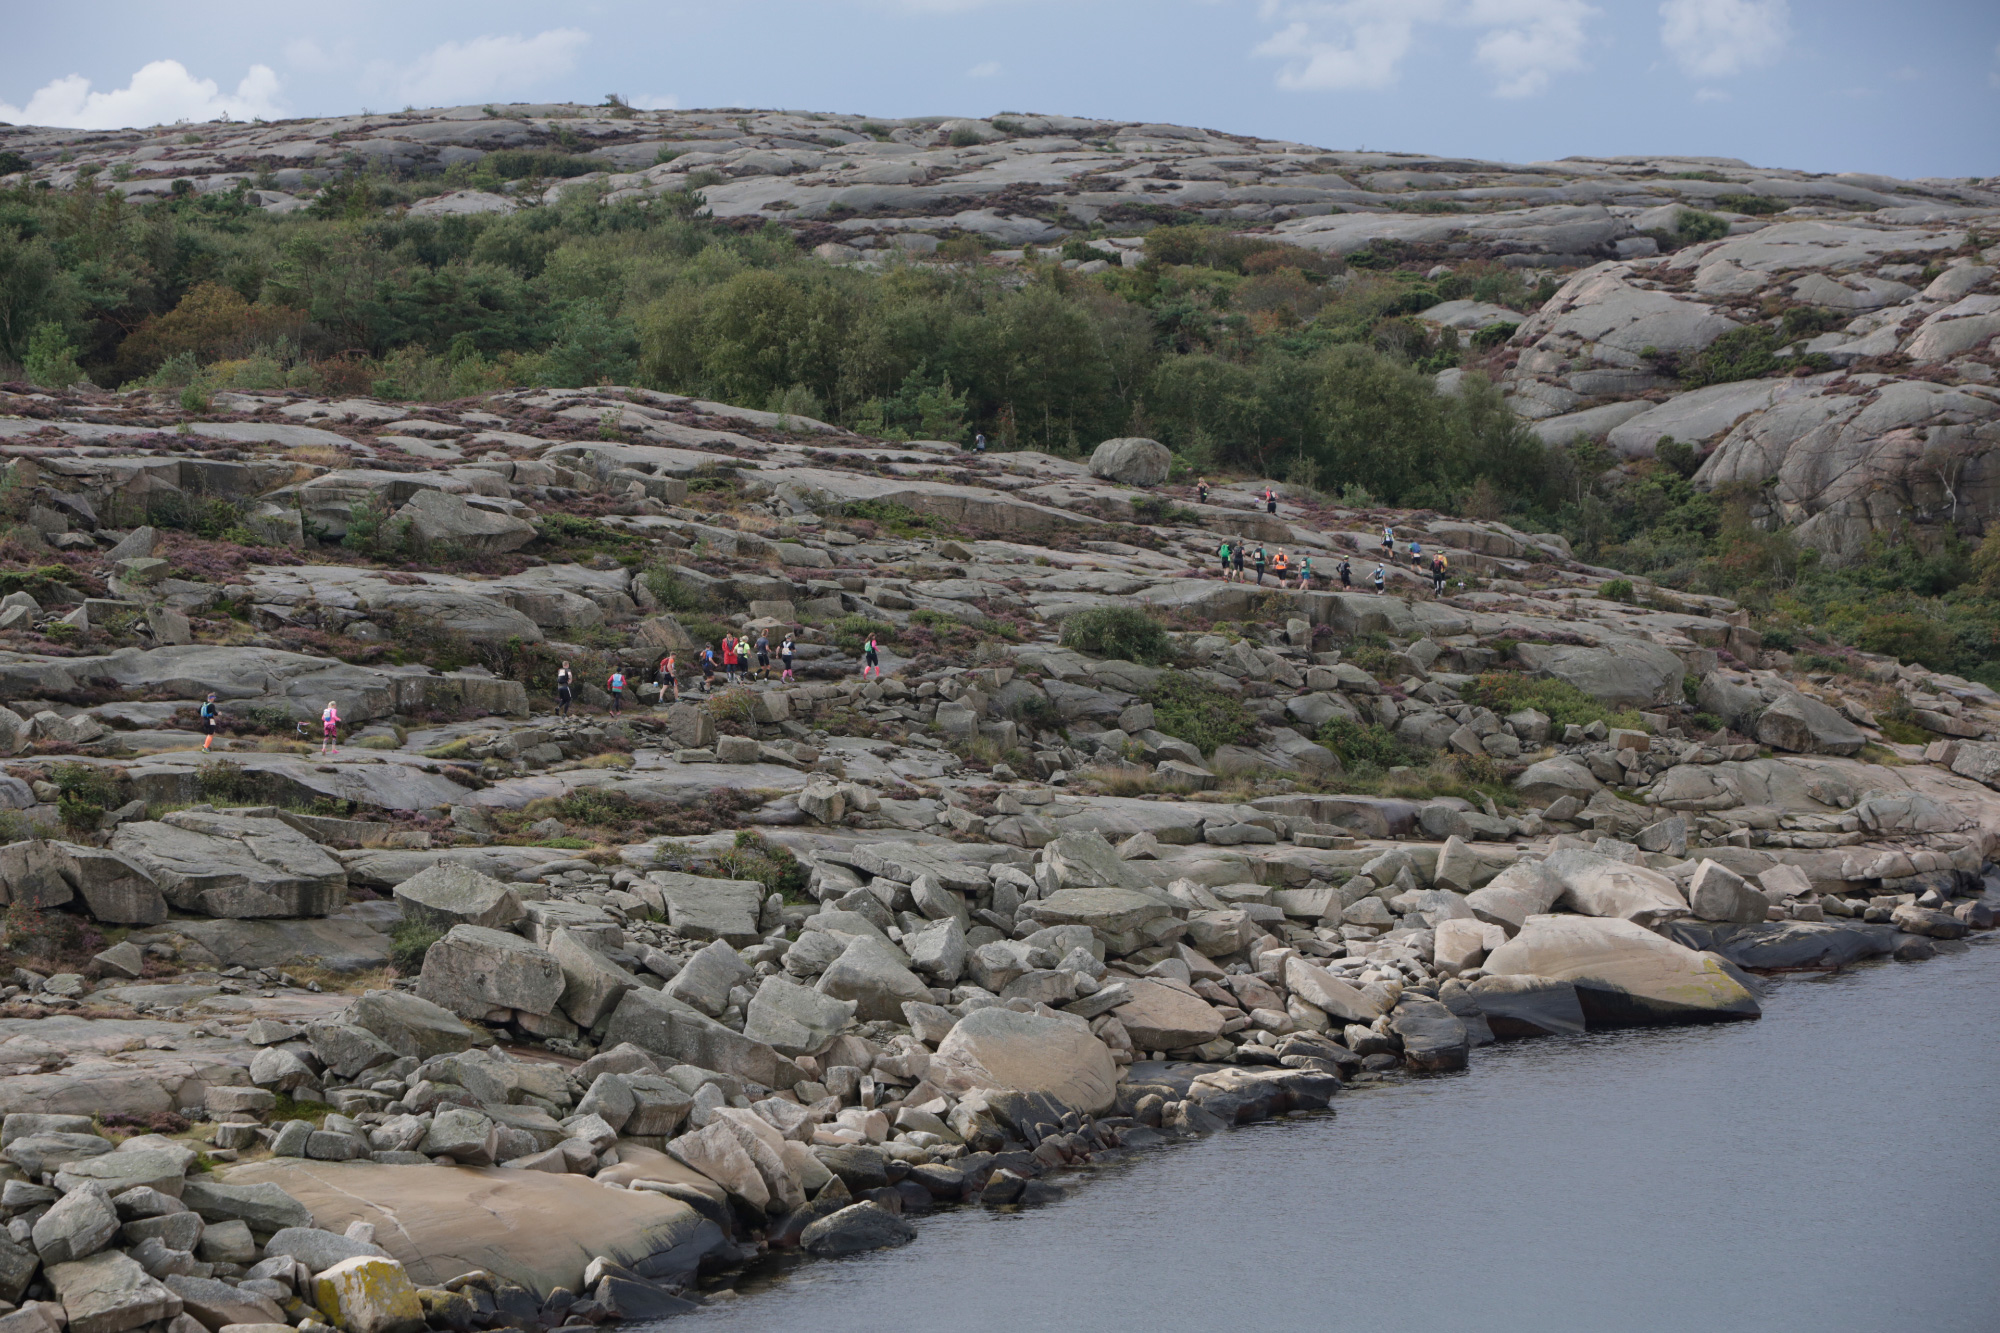 Long shot of runners running through very rocky landscape along the sea on the Icebug Xperience marathon